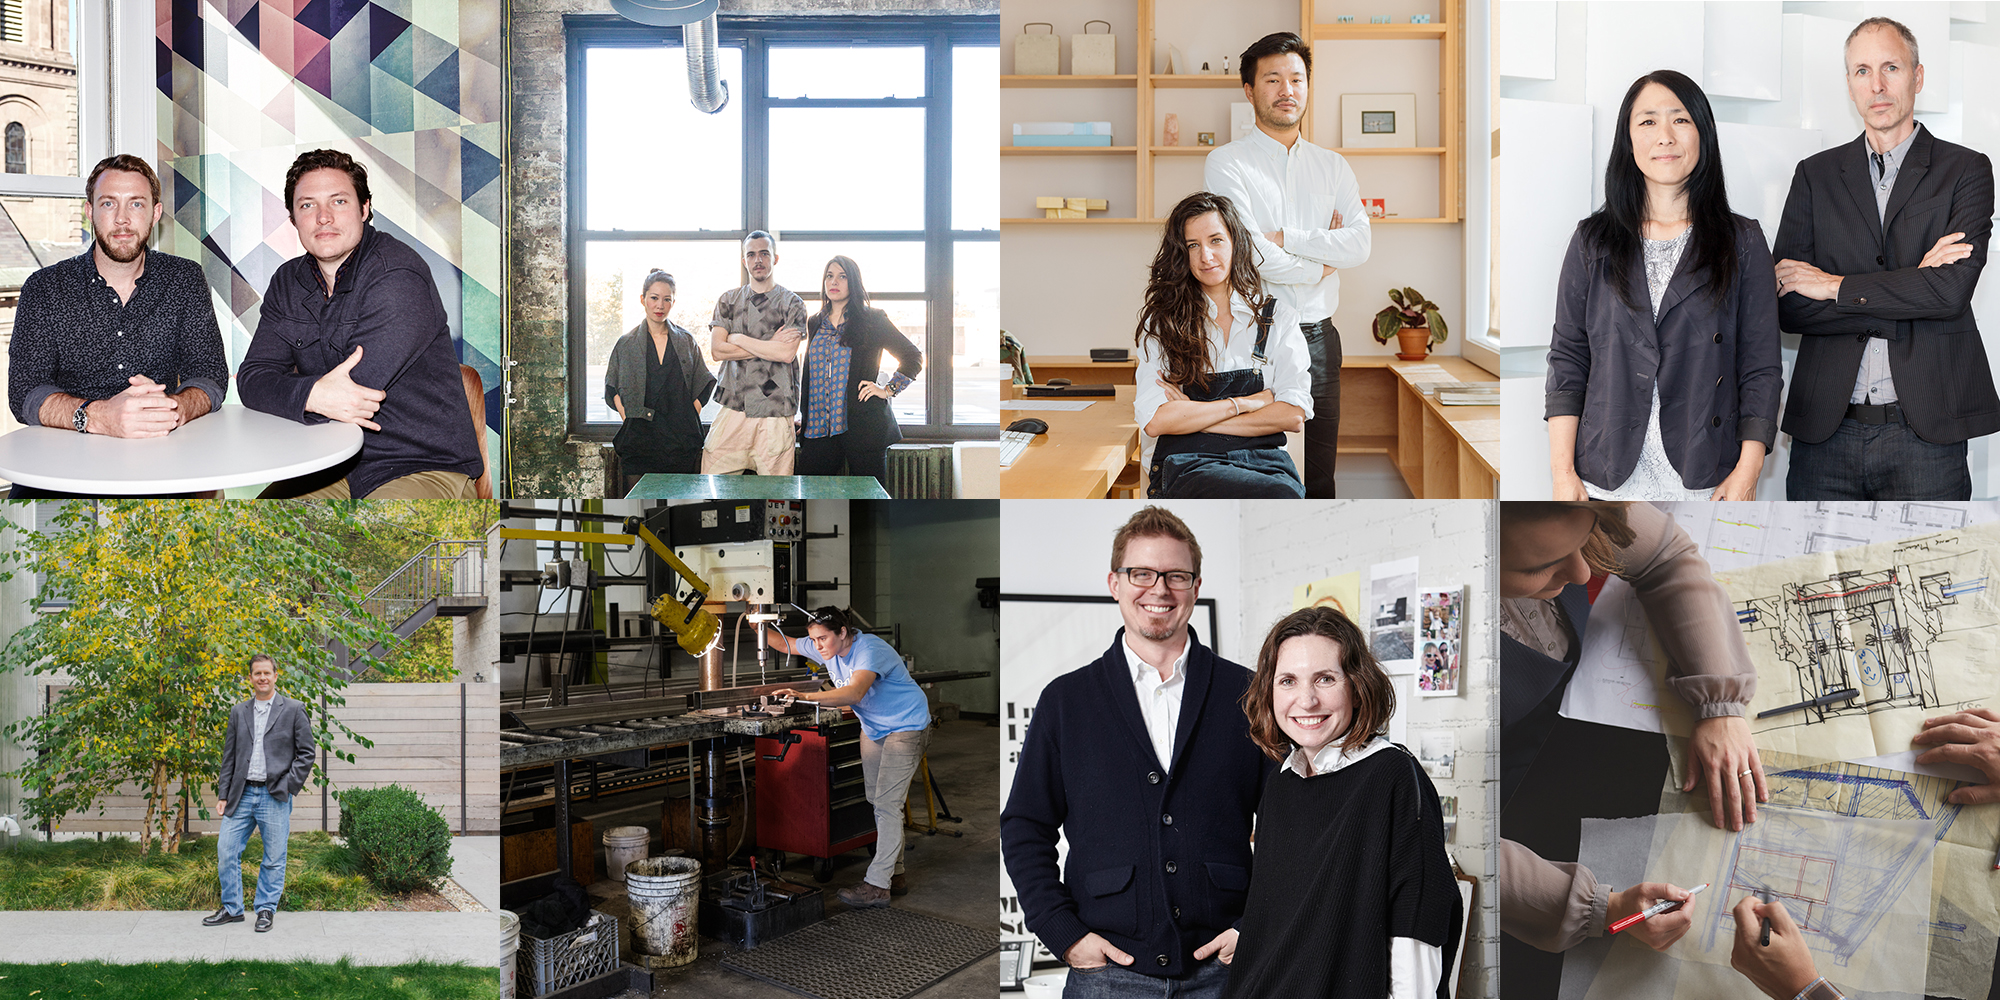 Winners, clockwise from top left: MASS Design Group, Bureau V, Family New York, Iwamoto Scott, KSS Architects, Aamodt / Plumb, El Dorado, Jeff Sommers of Square Root Architecture + Design. Photos by Simon Simard, Mark Wickens, Mark Wickens, Patricia